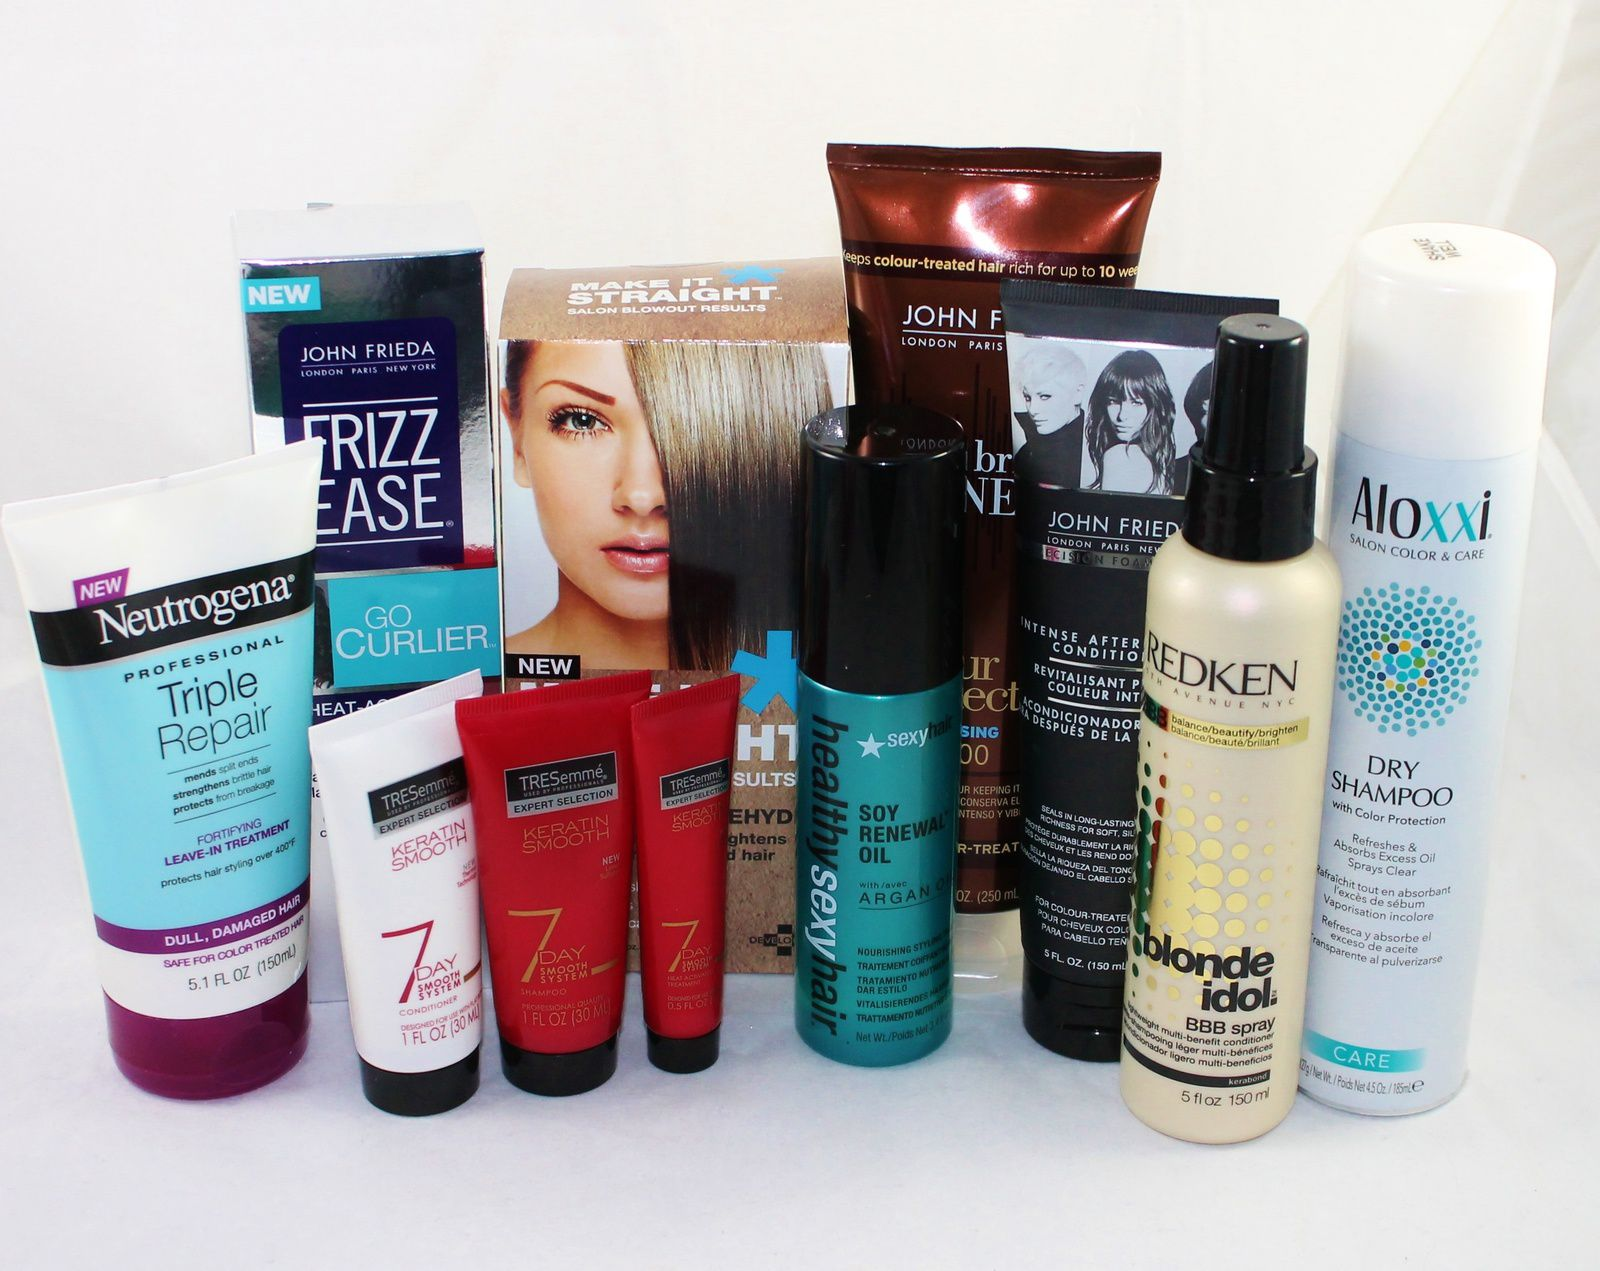 Neutrogena Triple Repair Fortifying Leave In Treatment, TRESemme Keratin Smooth 7 Day Smooth Control Starter Set, Healthy Sexy Hair Soy Renewal Oil Nourishing Styling Treatment, John Frieda Precision Foam Colour Intense After Colour Conditioner, Redken Blonde Idol BBB Spray, Aloxxi Dry Shampoo, John Frieda Brilliant Brunette Colour Protecting Shampoo, Make It Straight & John Frieda Frizz Ease Go Curlier Heat Activated Spray